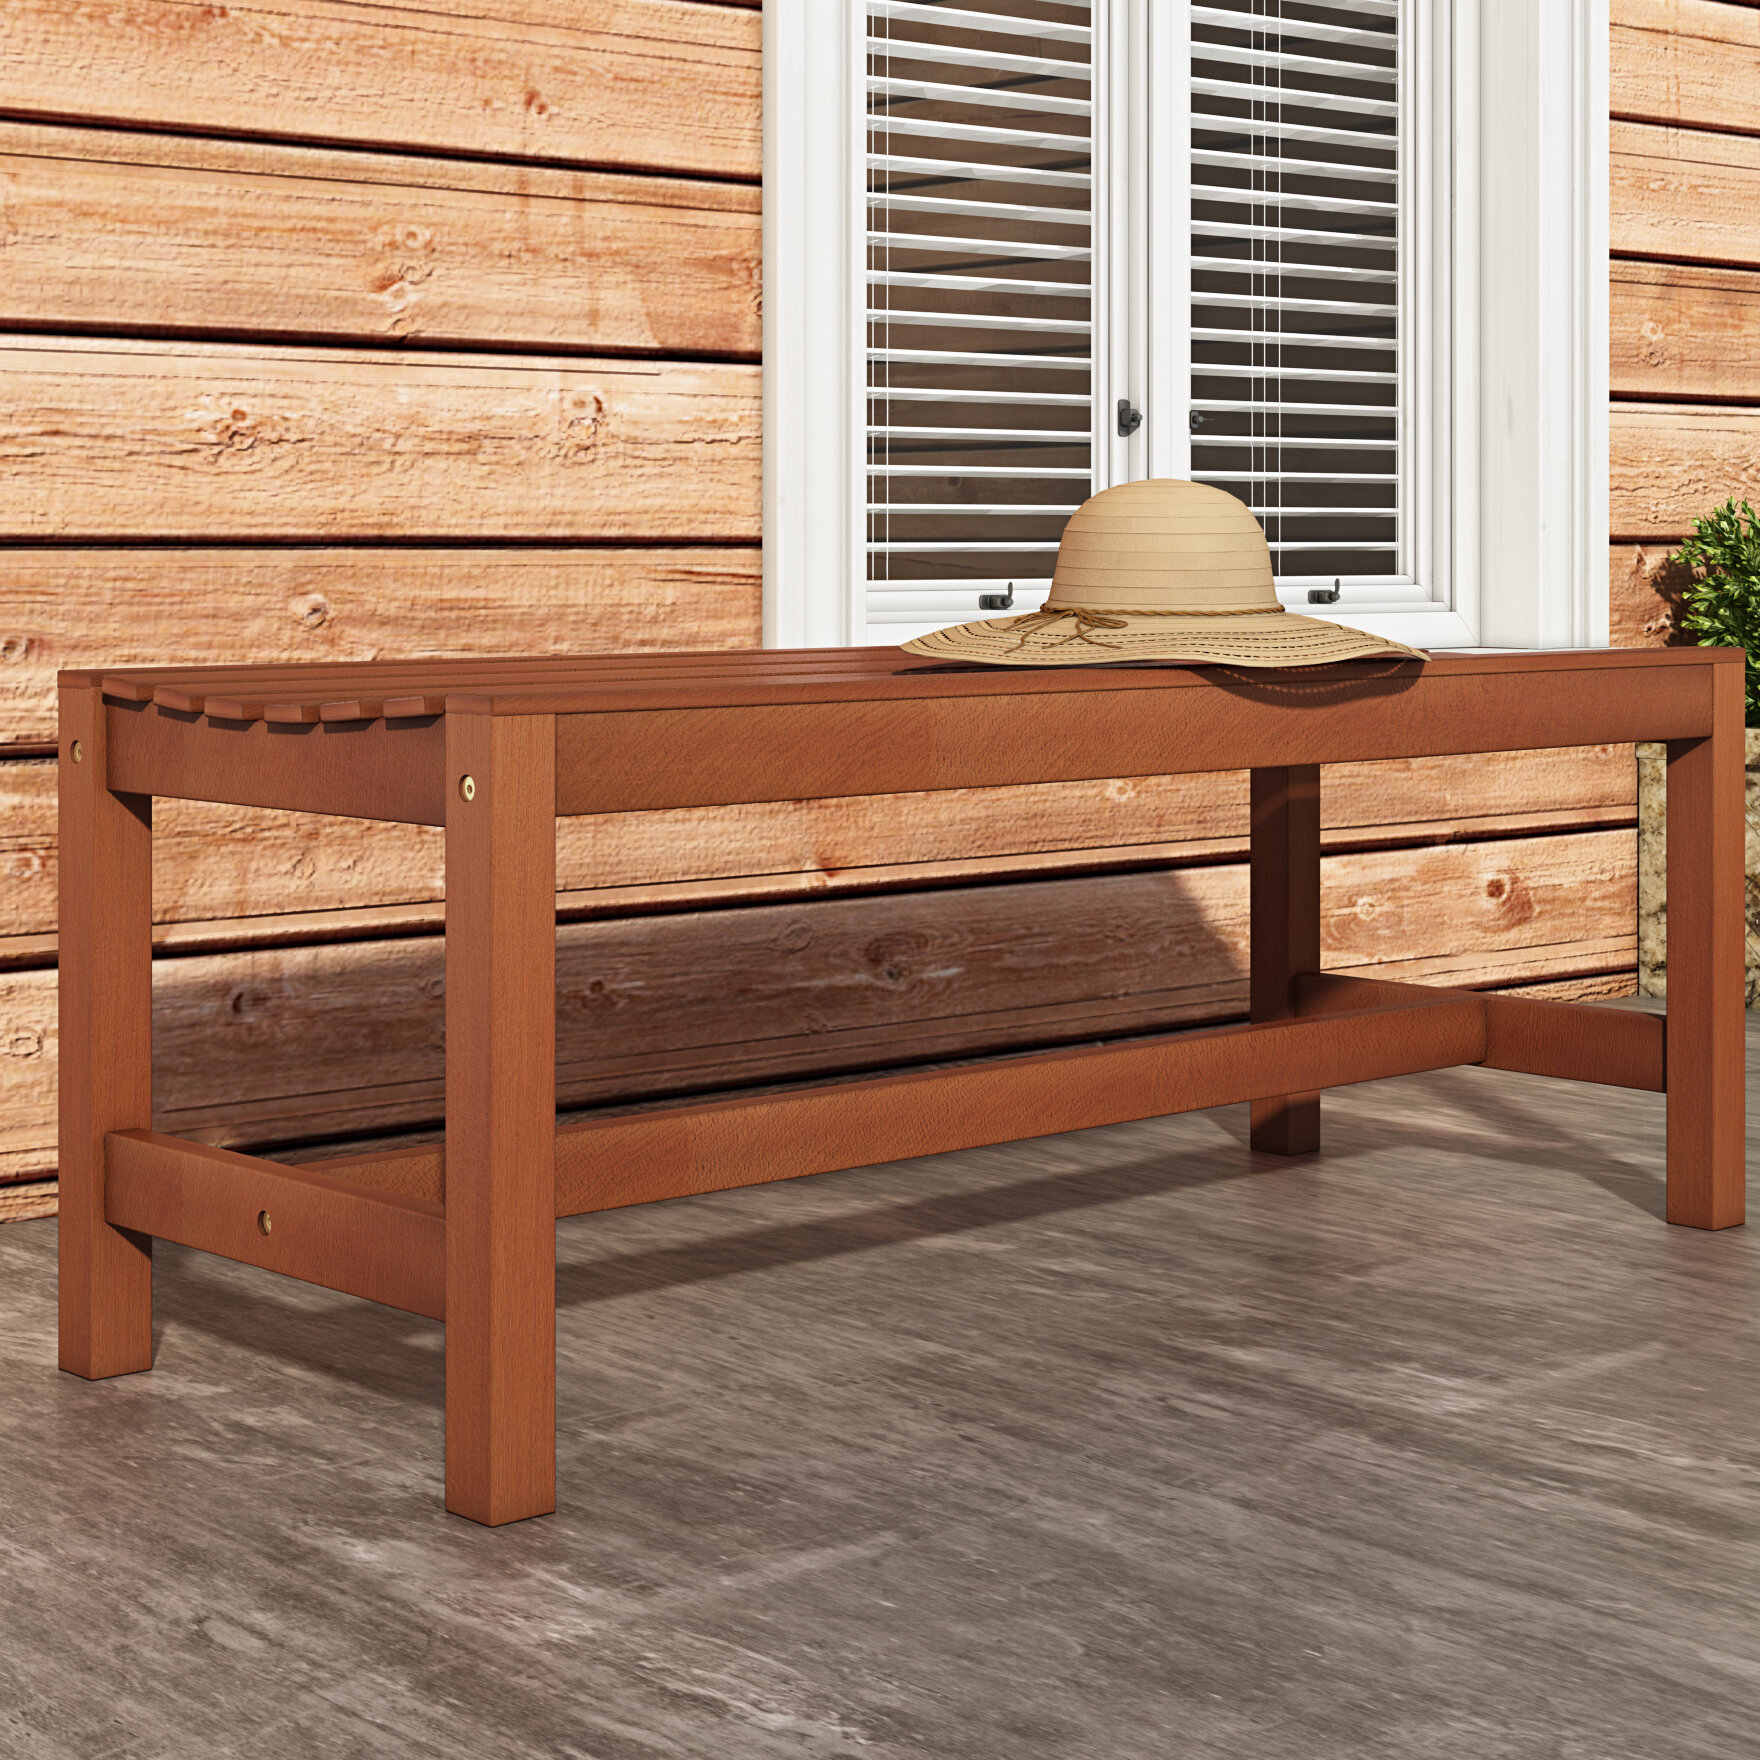 Amabel Wooden Outdoor Picnic Bench In Amabel Wooden Garden Benches (View 9 of 25)